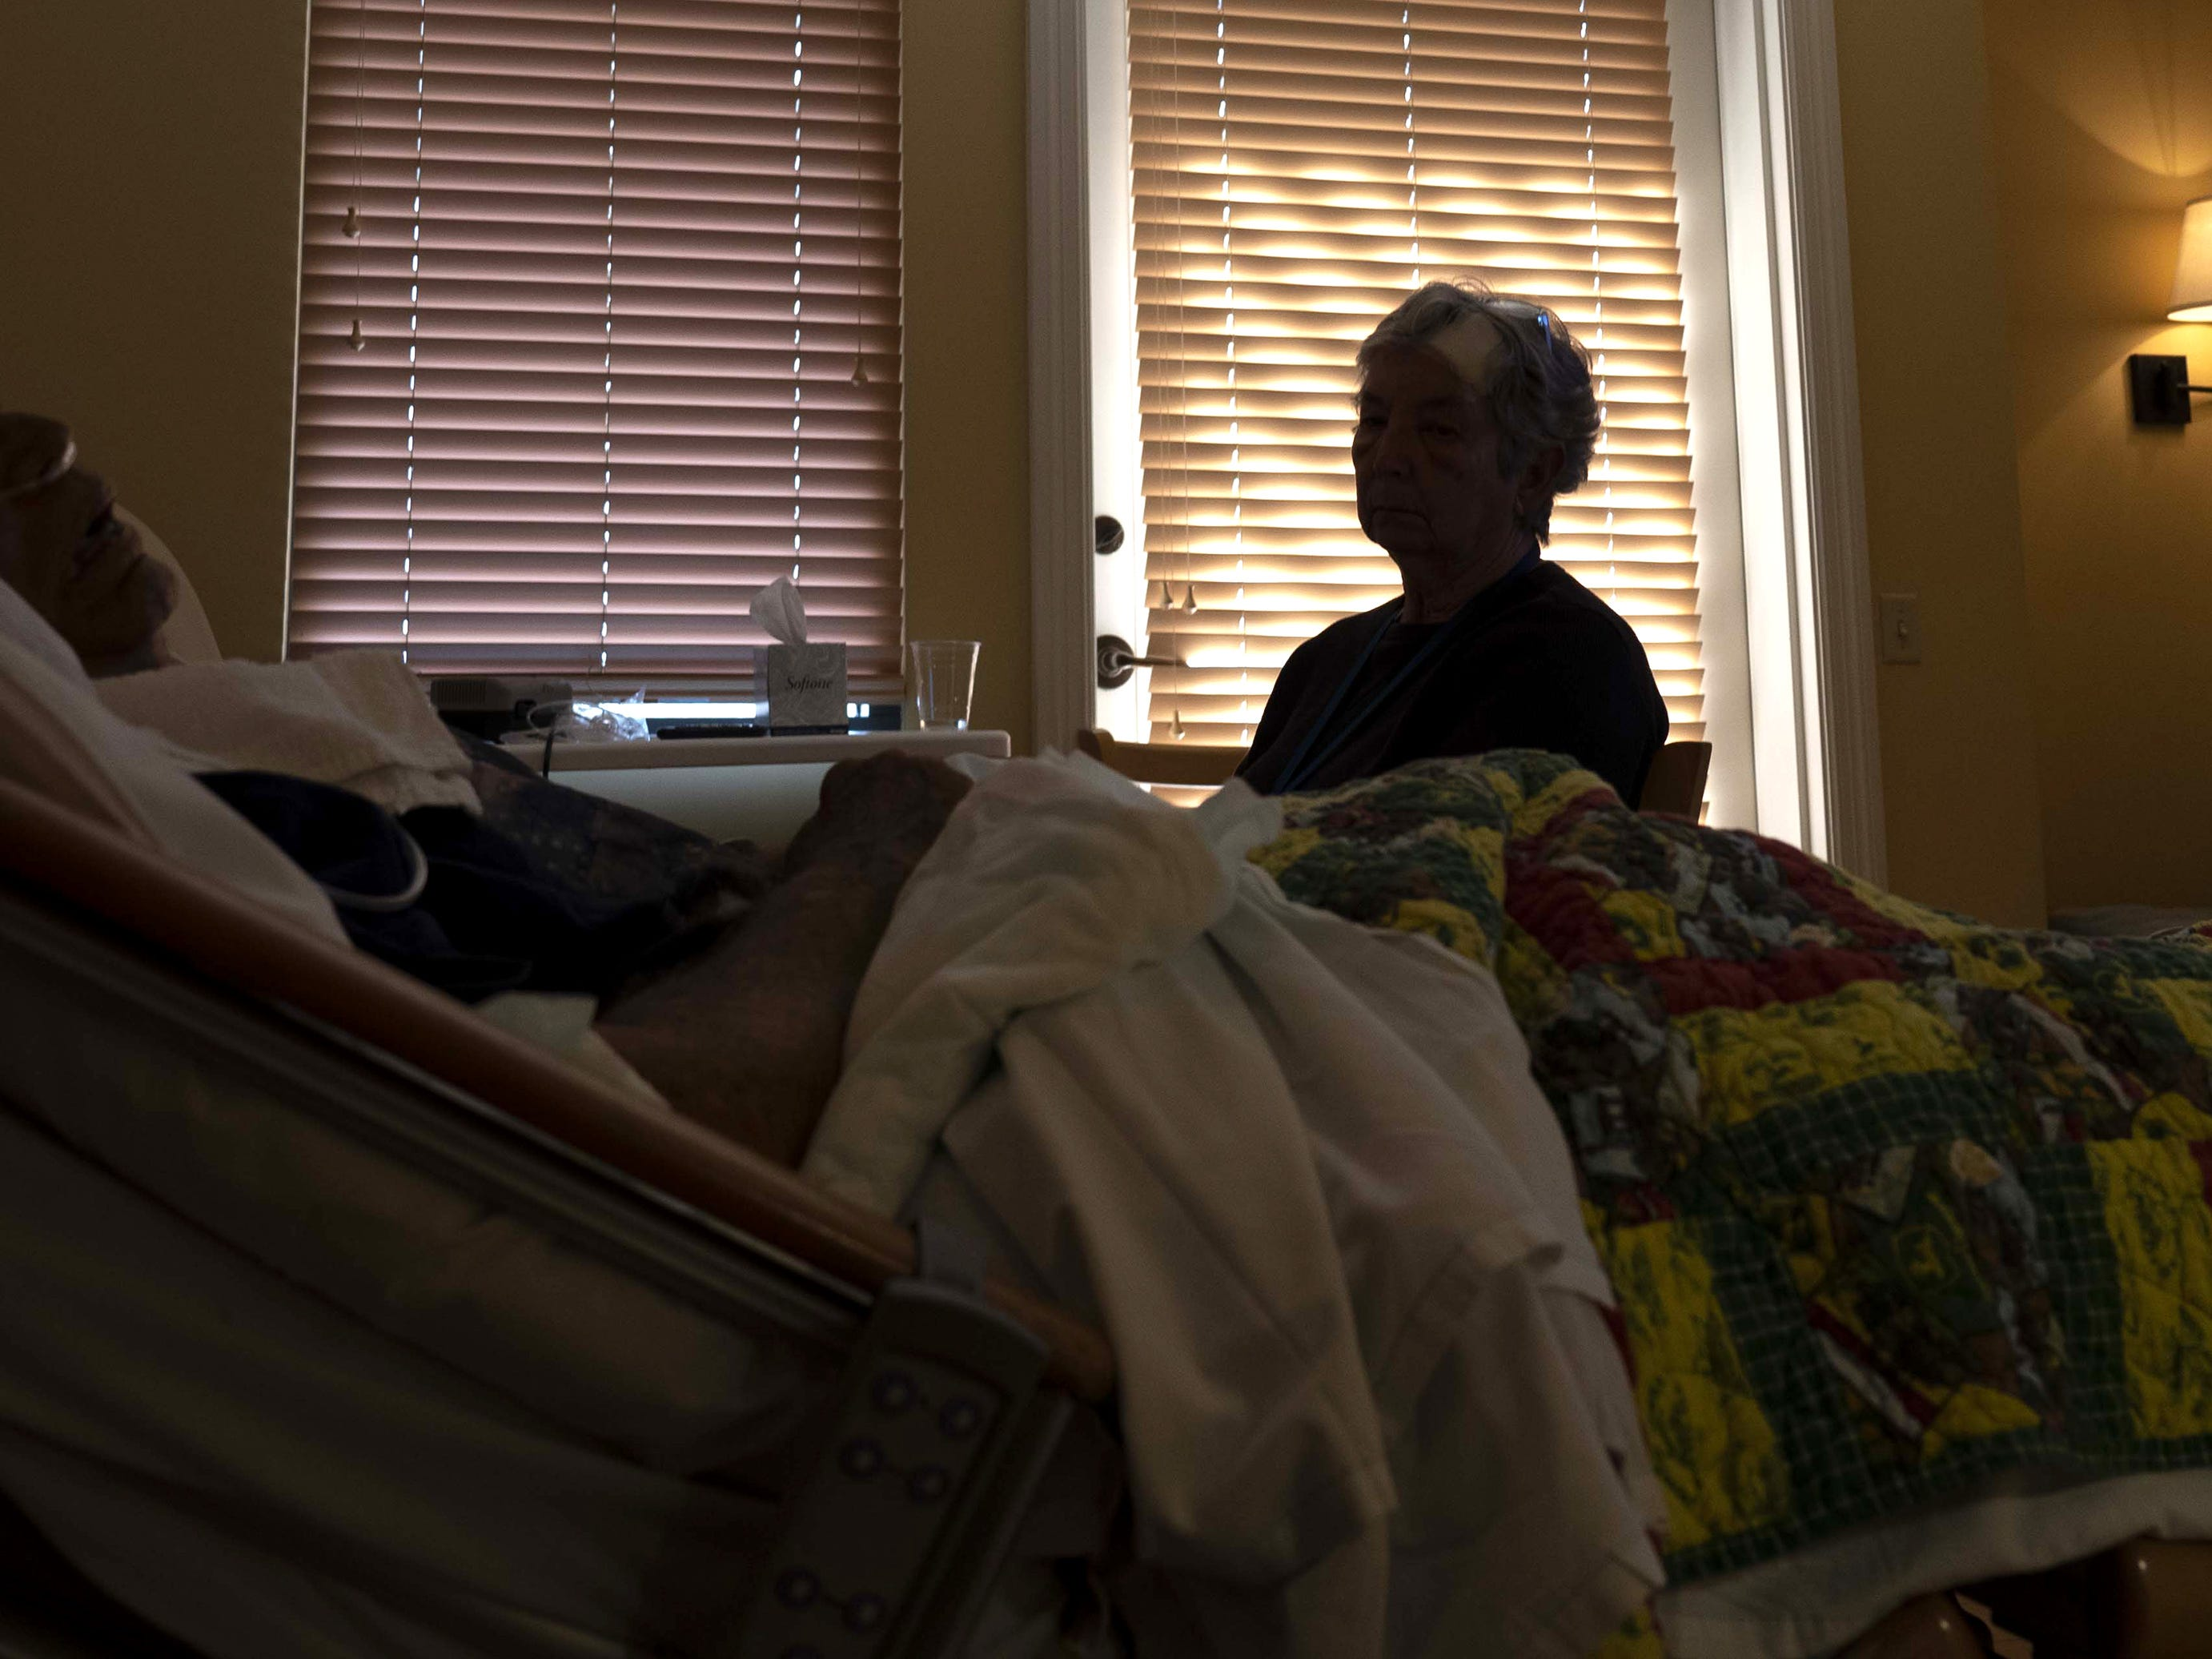 Jane Conrow, a volunteer with Hospice of the Valley's 11th Hour Companion program, watches patient Robert Arneson.